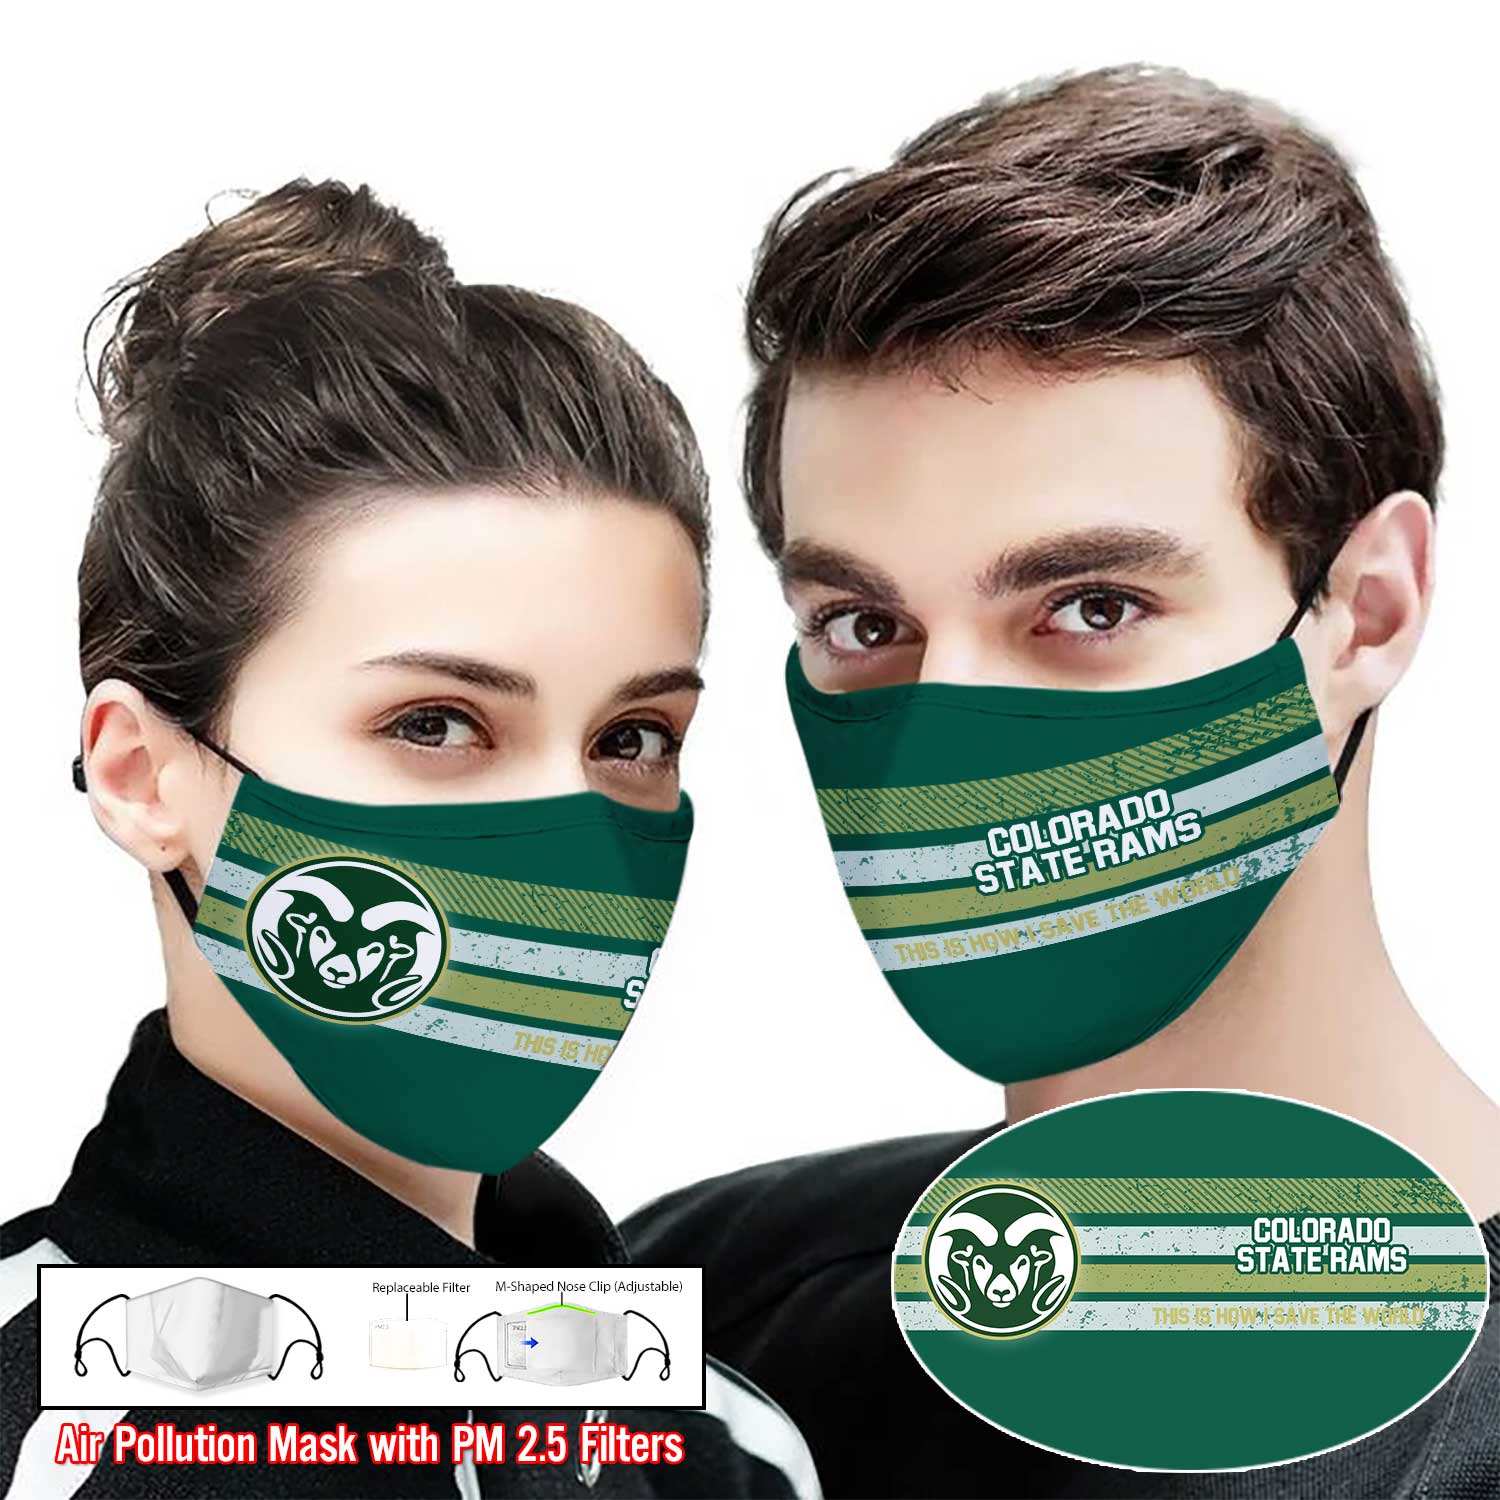 Colorado state rams this is how i save the world face mask 2